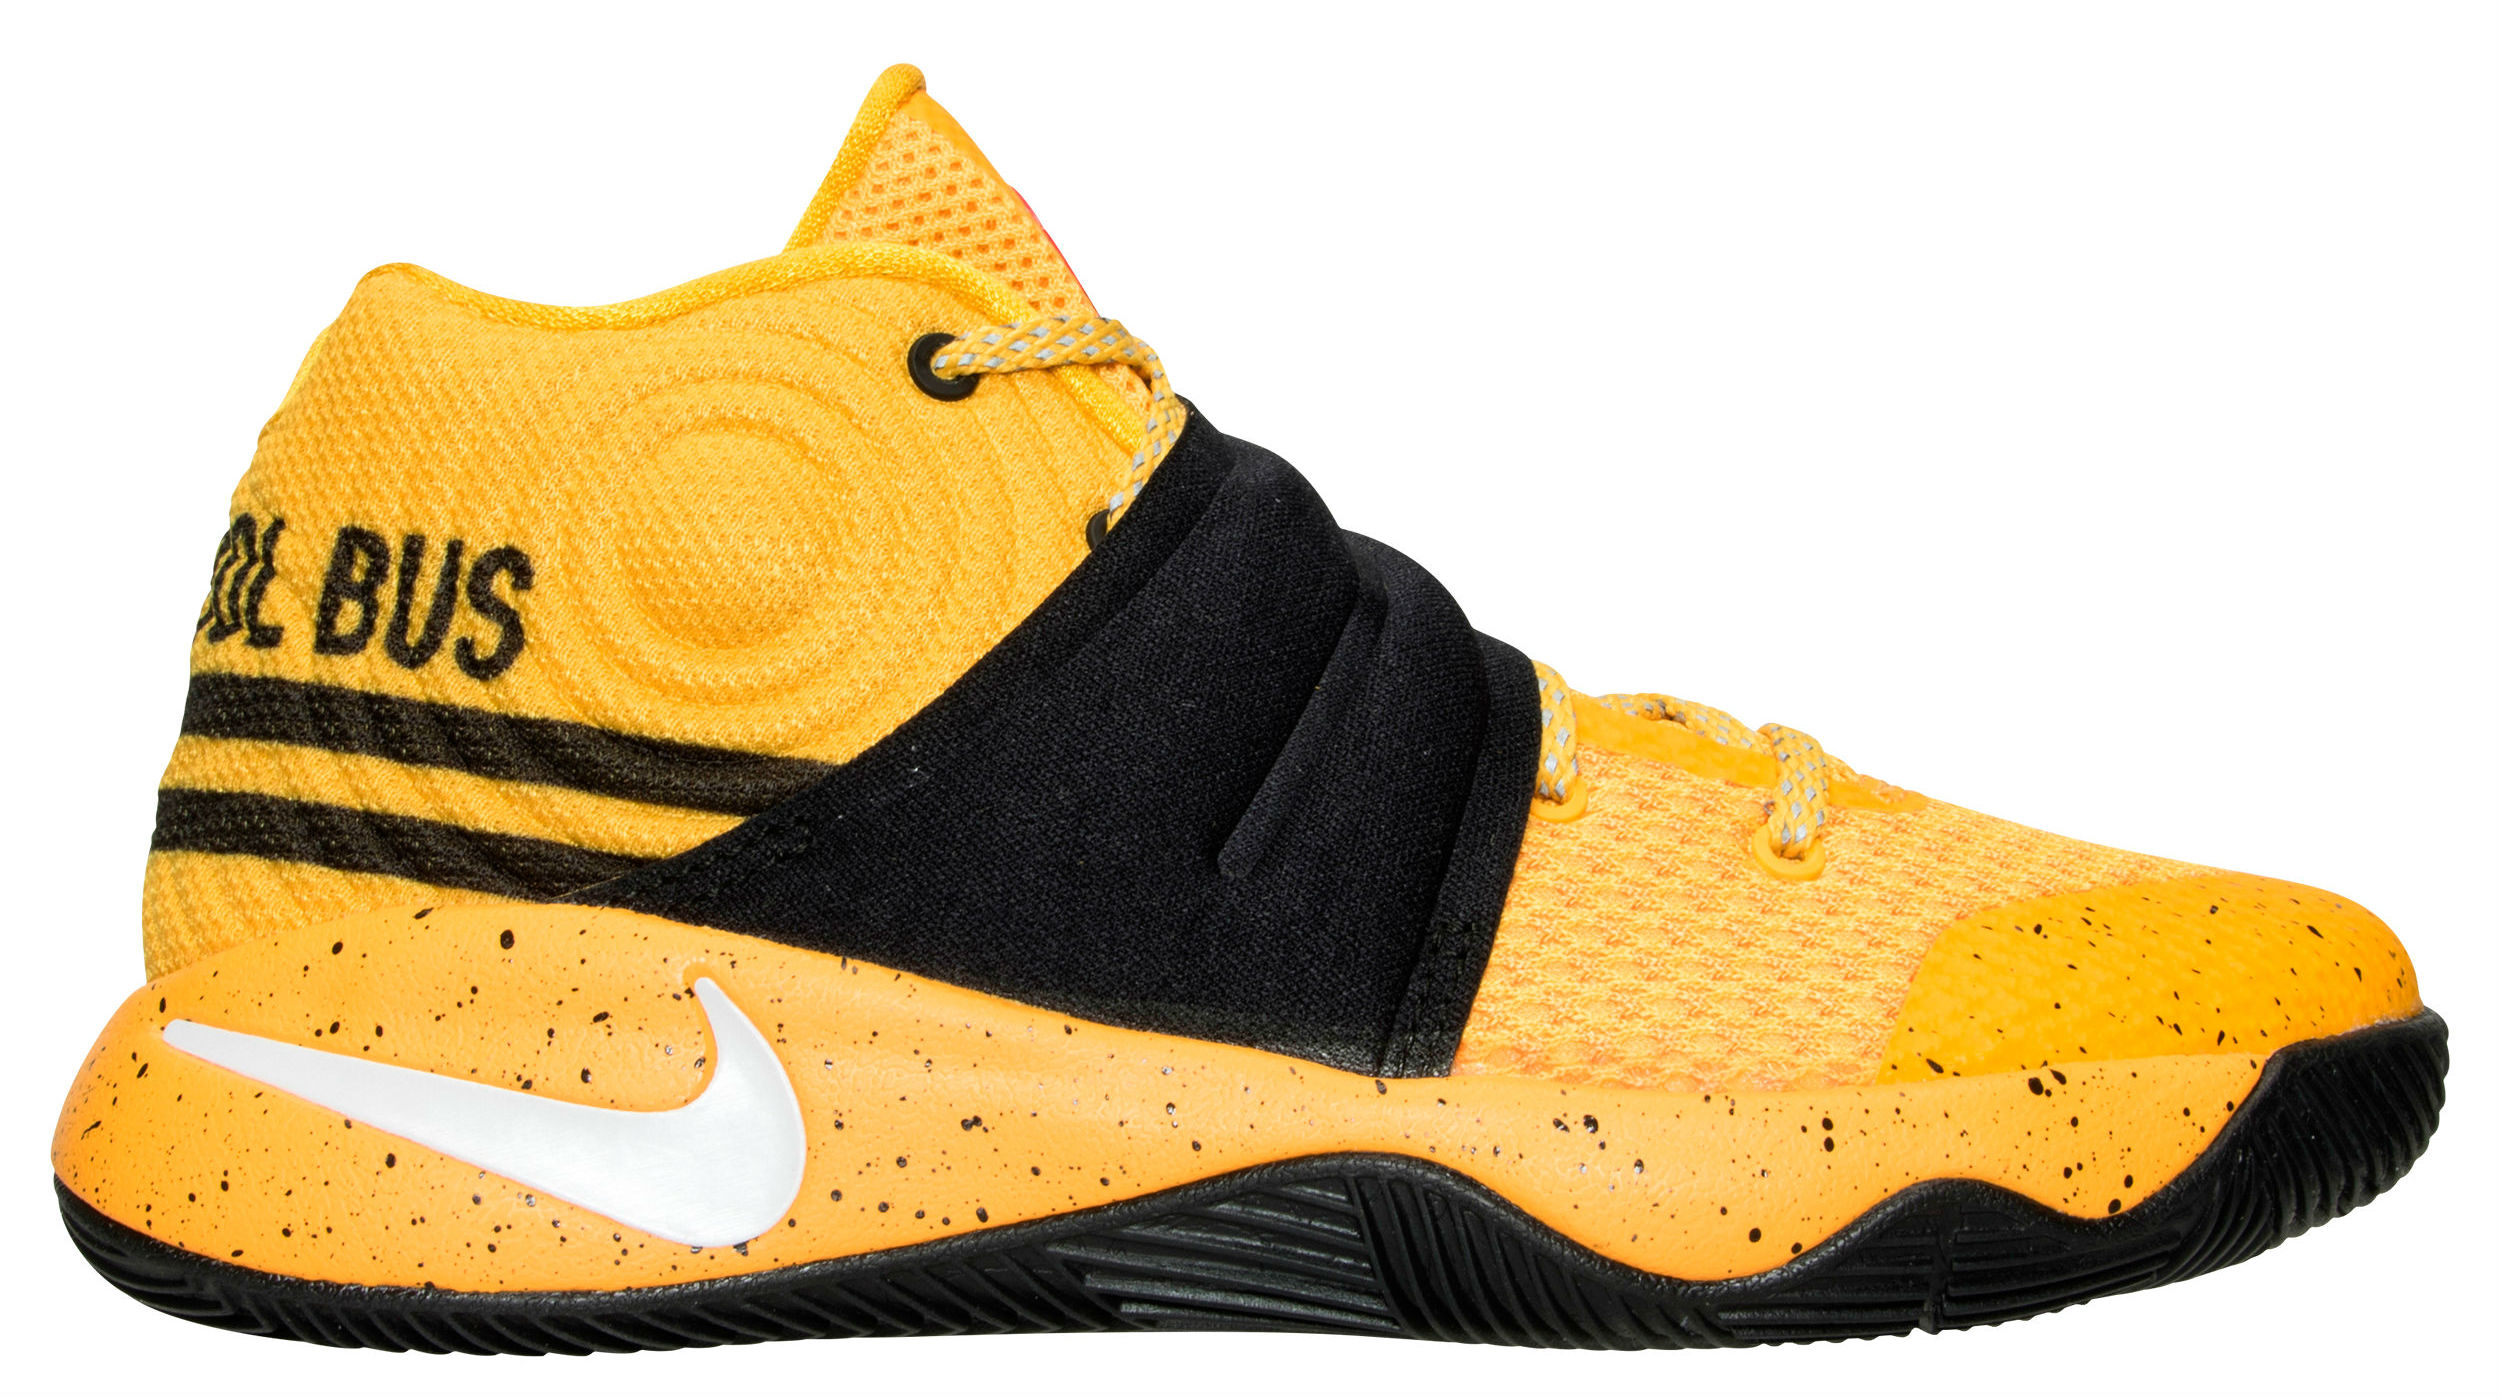 bb8aea18e82 School Bus Kyrie 2 Release Date Side 827280-700